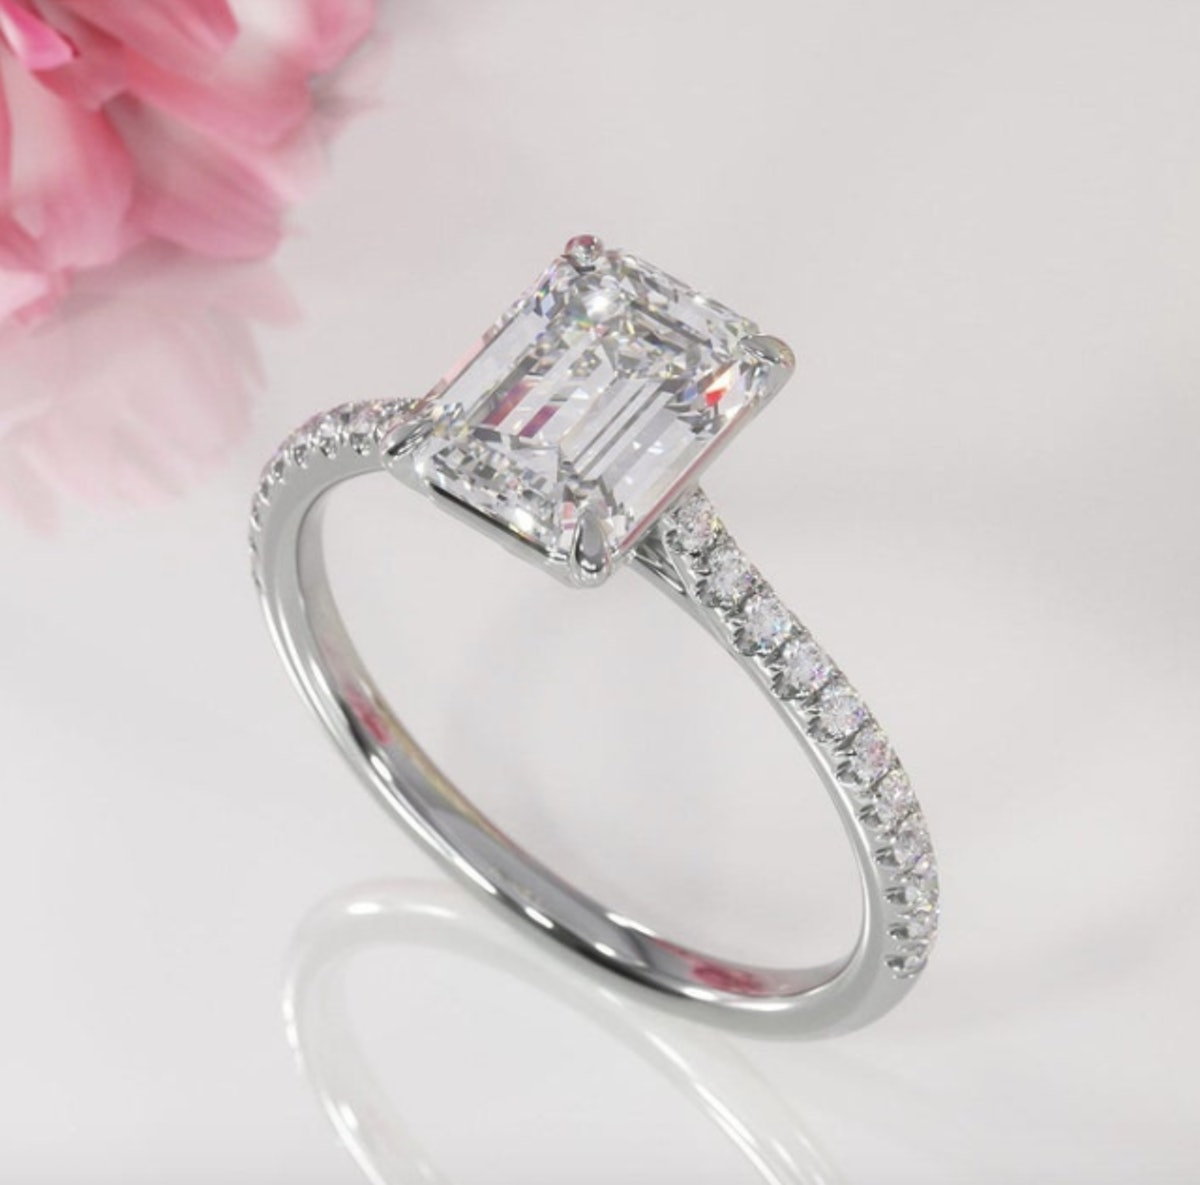 2.00ct Emerald Cut Moissanite Engagement Ring, Available in White Gold or Platinum